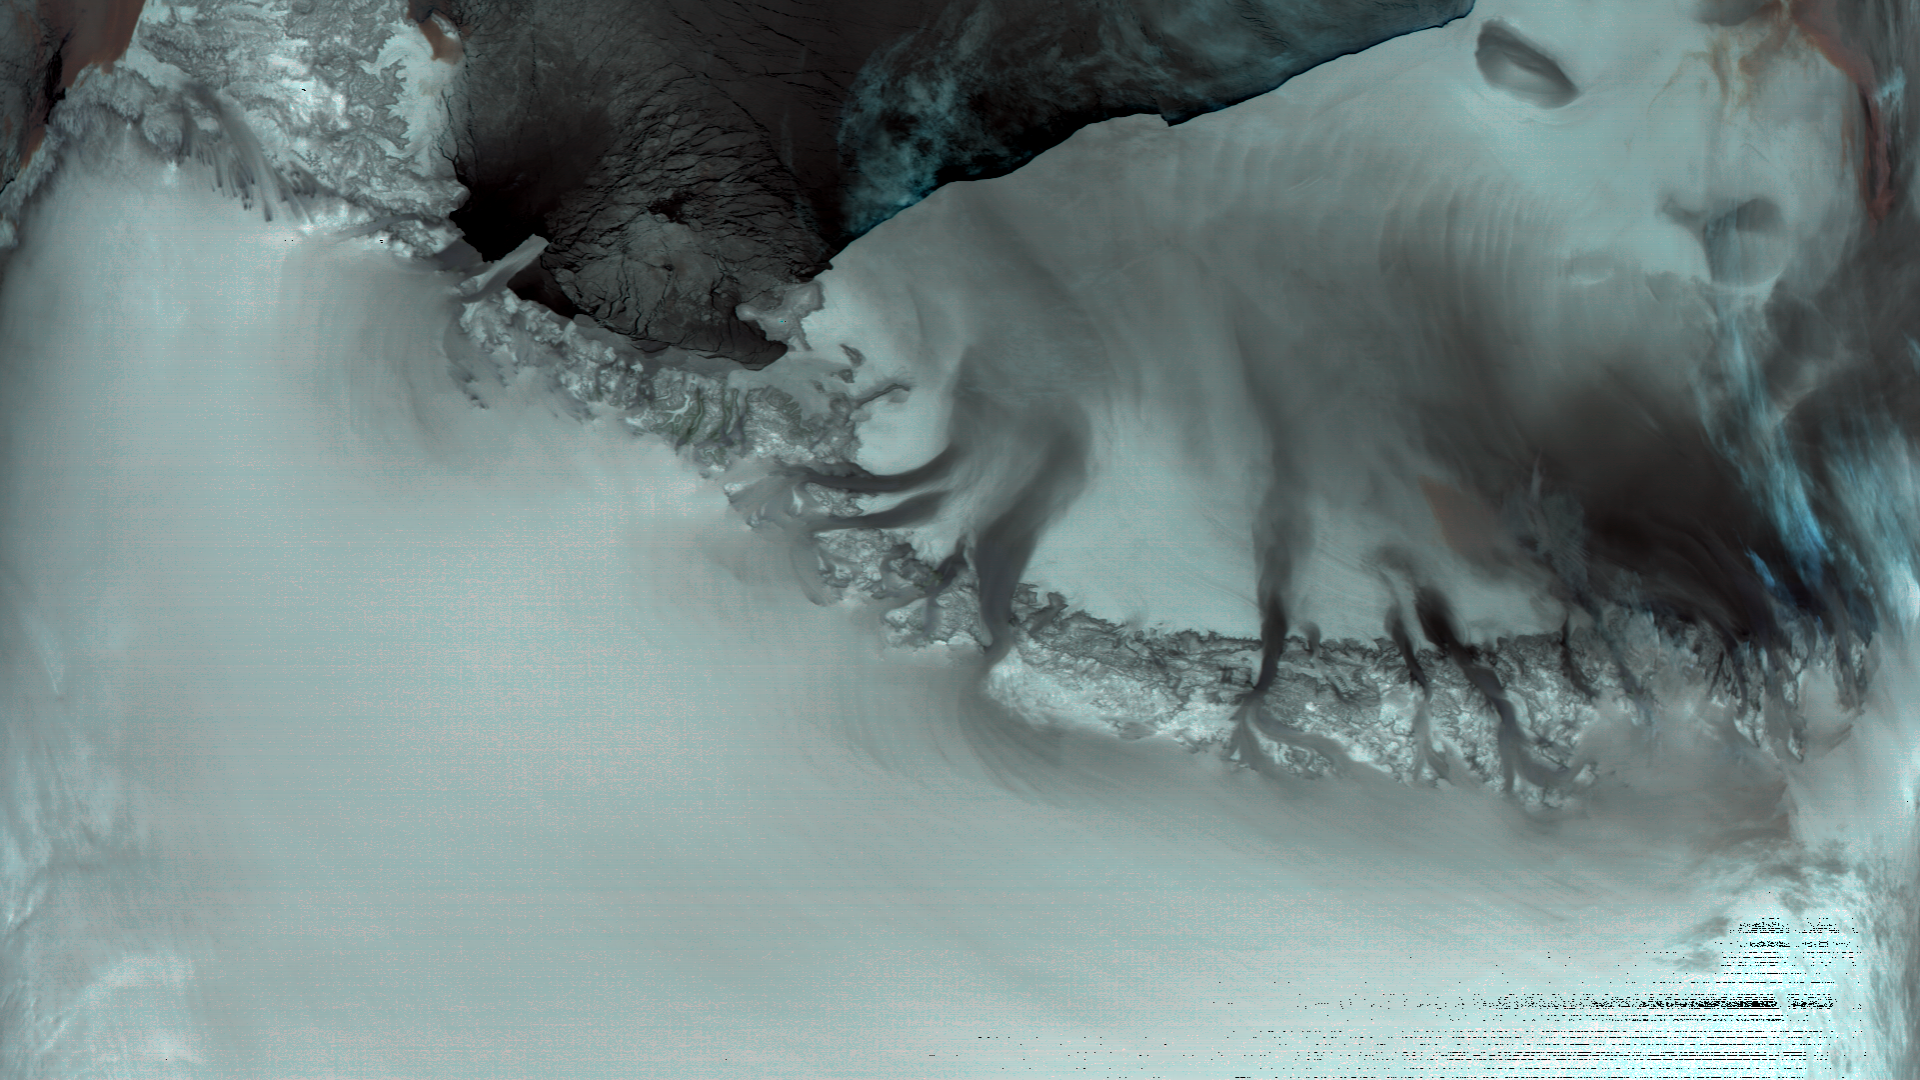 Katabatic winds over Antarctica